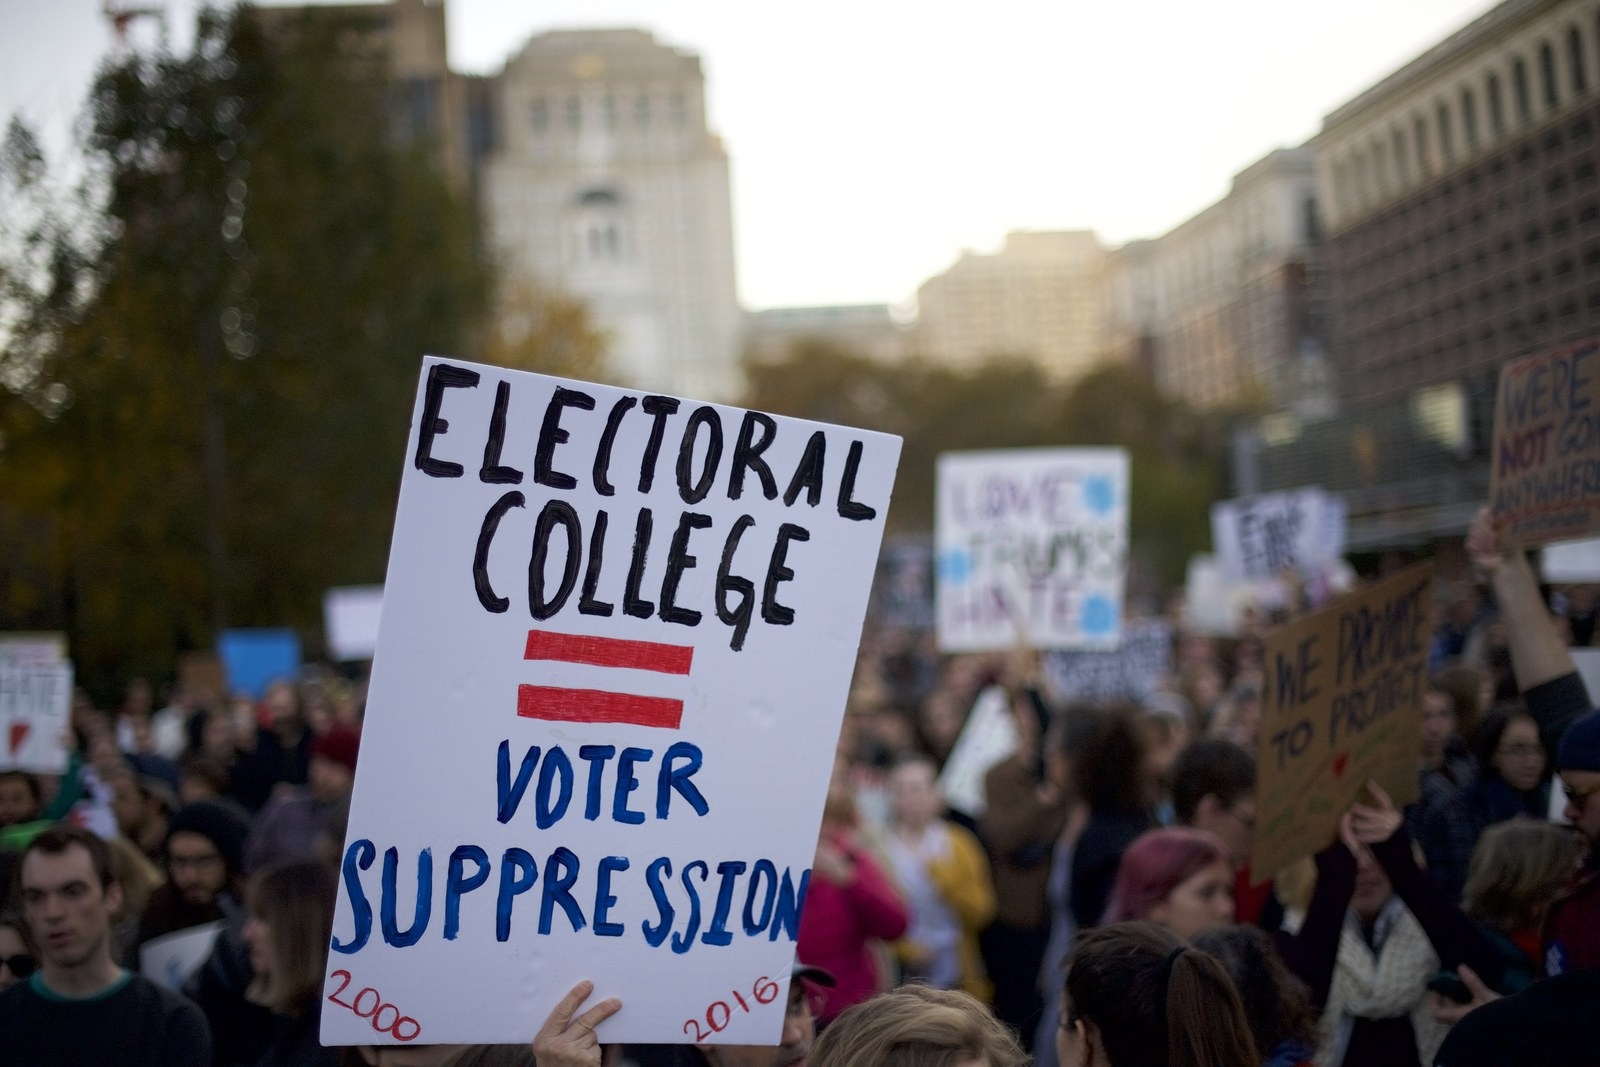 Anti-Trump Protesters Post Personal Information Of Electoral College Members